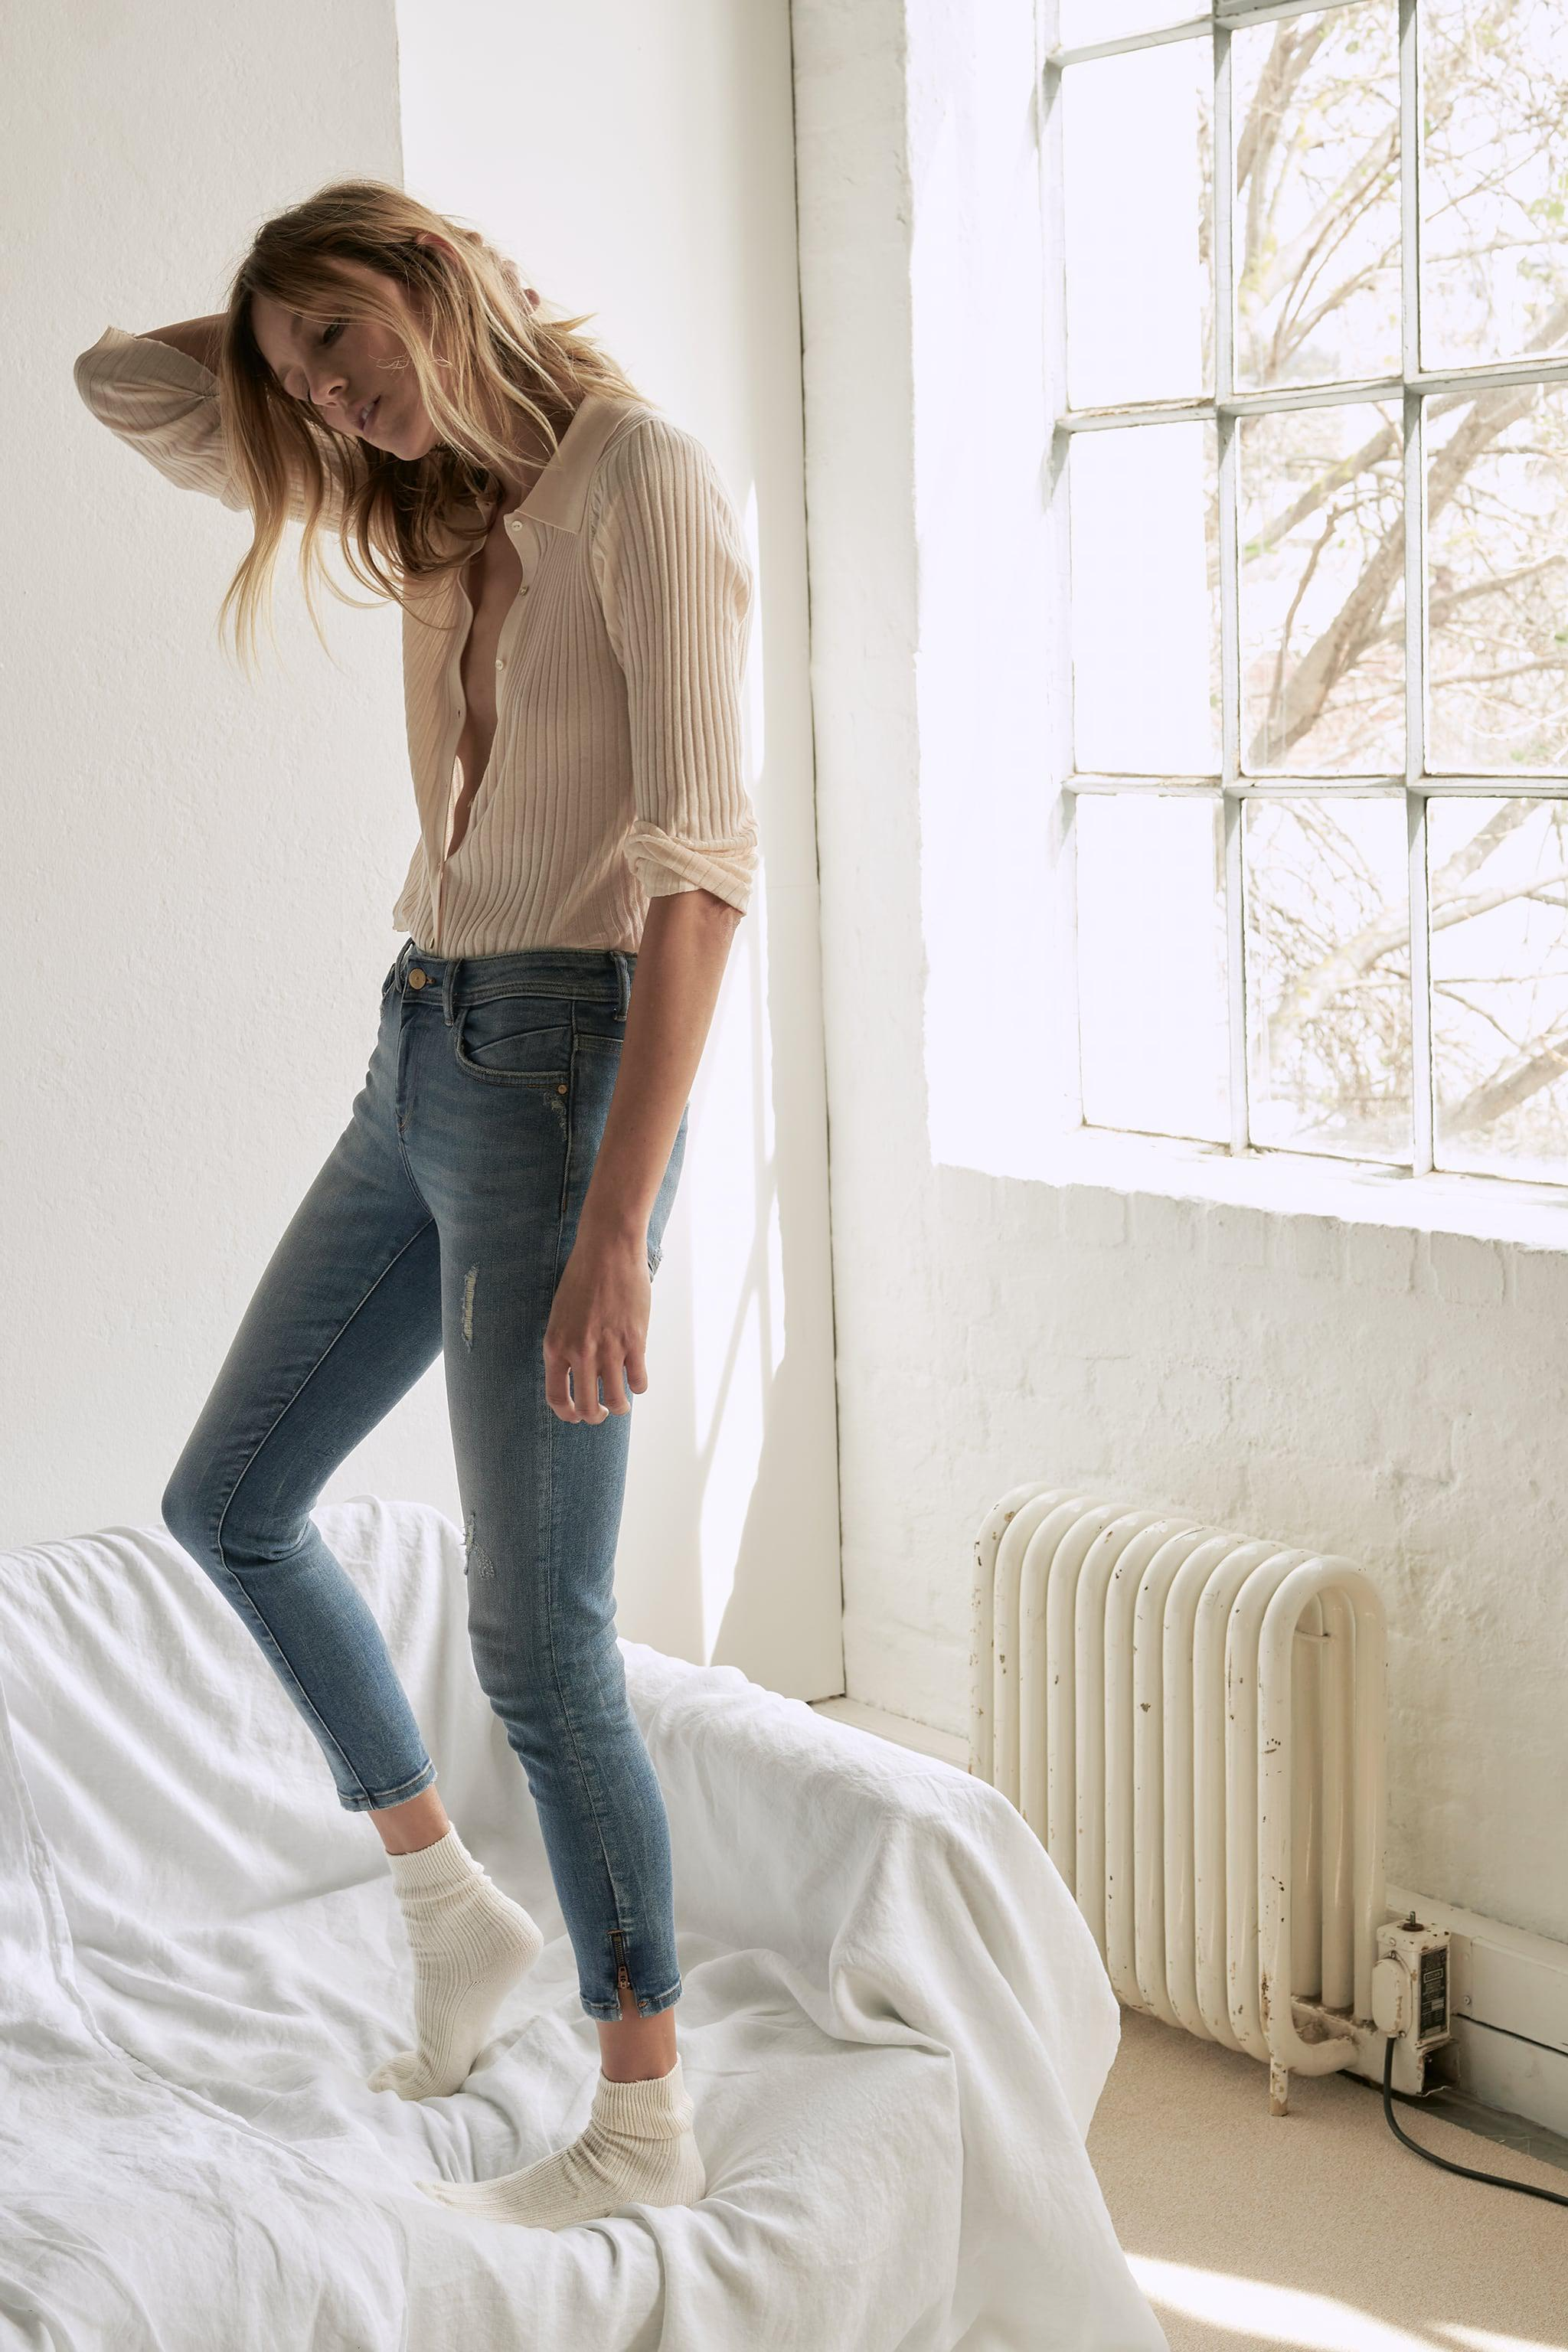 Z1975 MID RISE ZIPPERED SKINNY JEANS